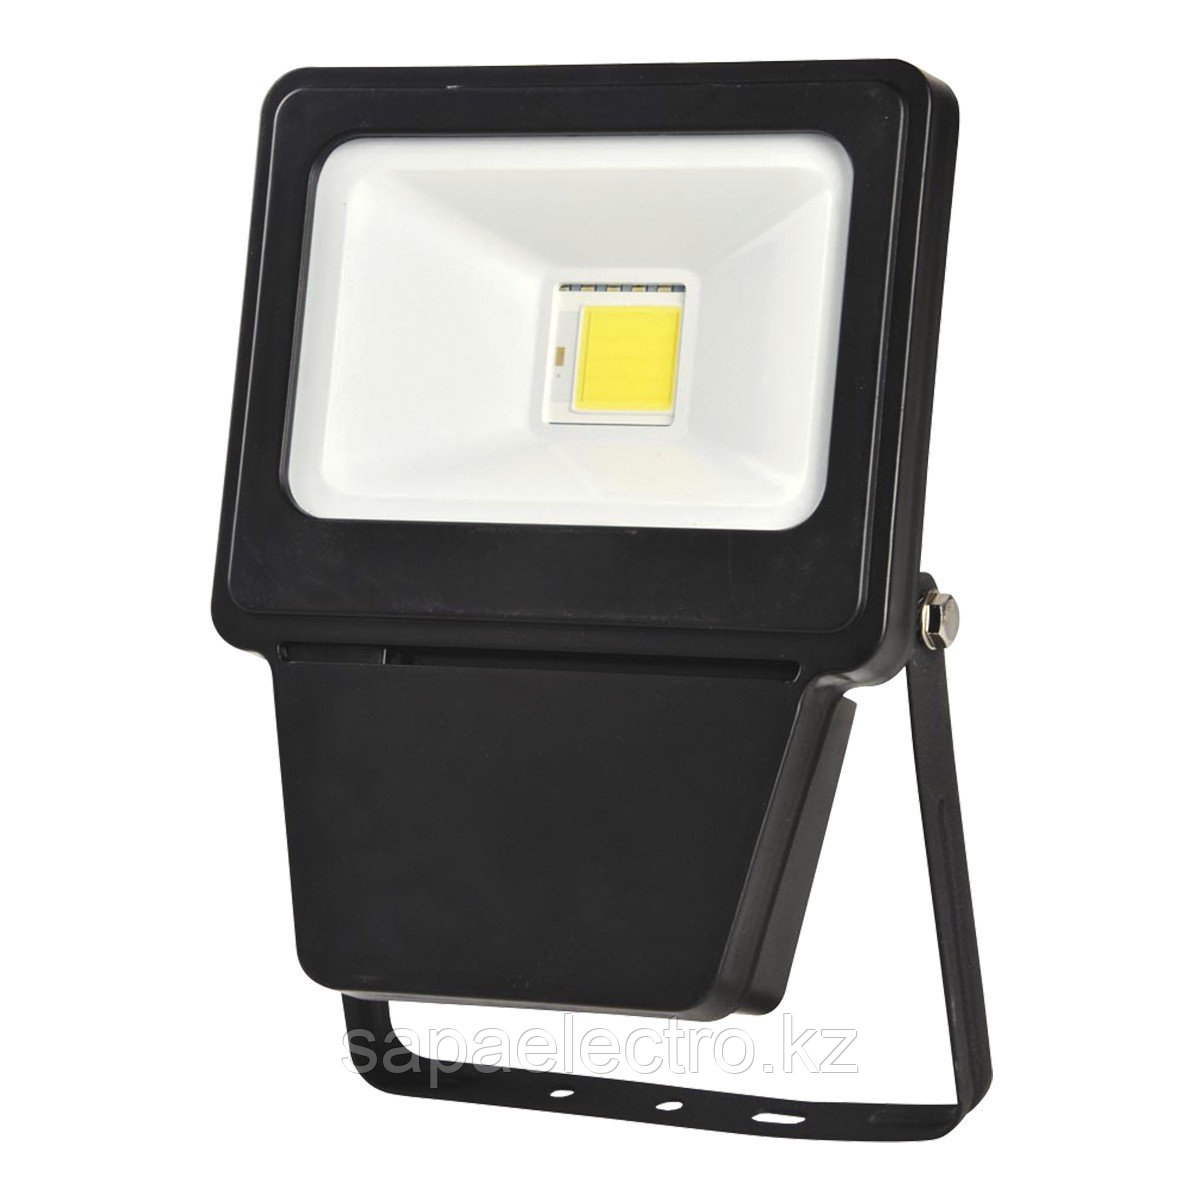 Прожектор LED COB 20W BLACK 6000K  (TS)28шт